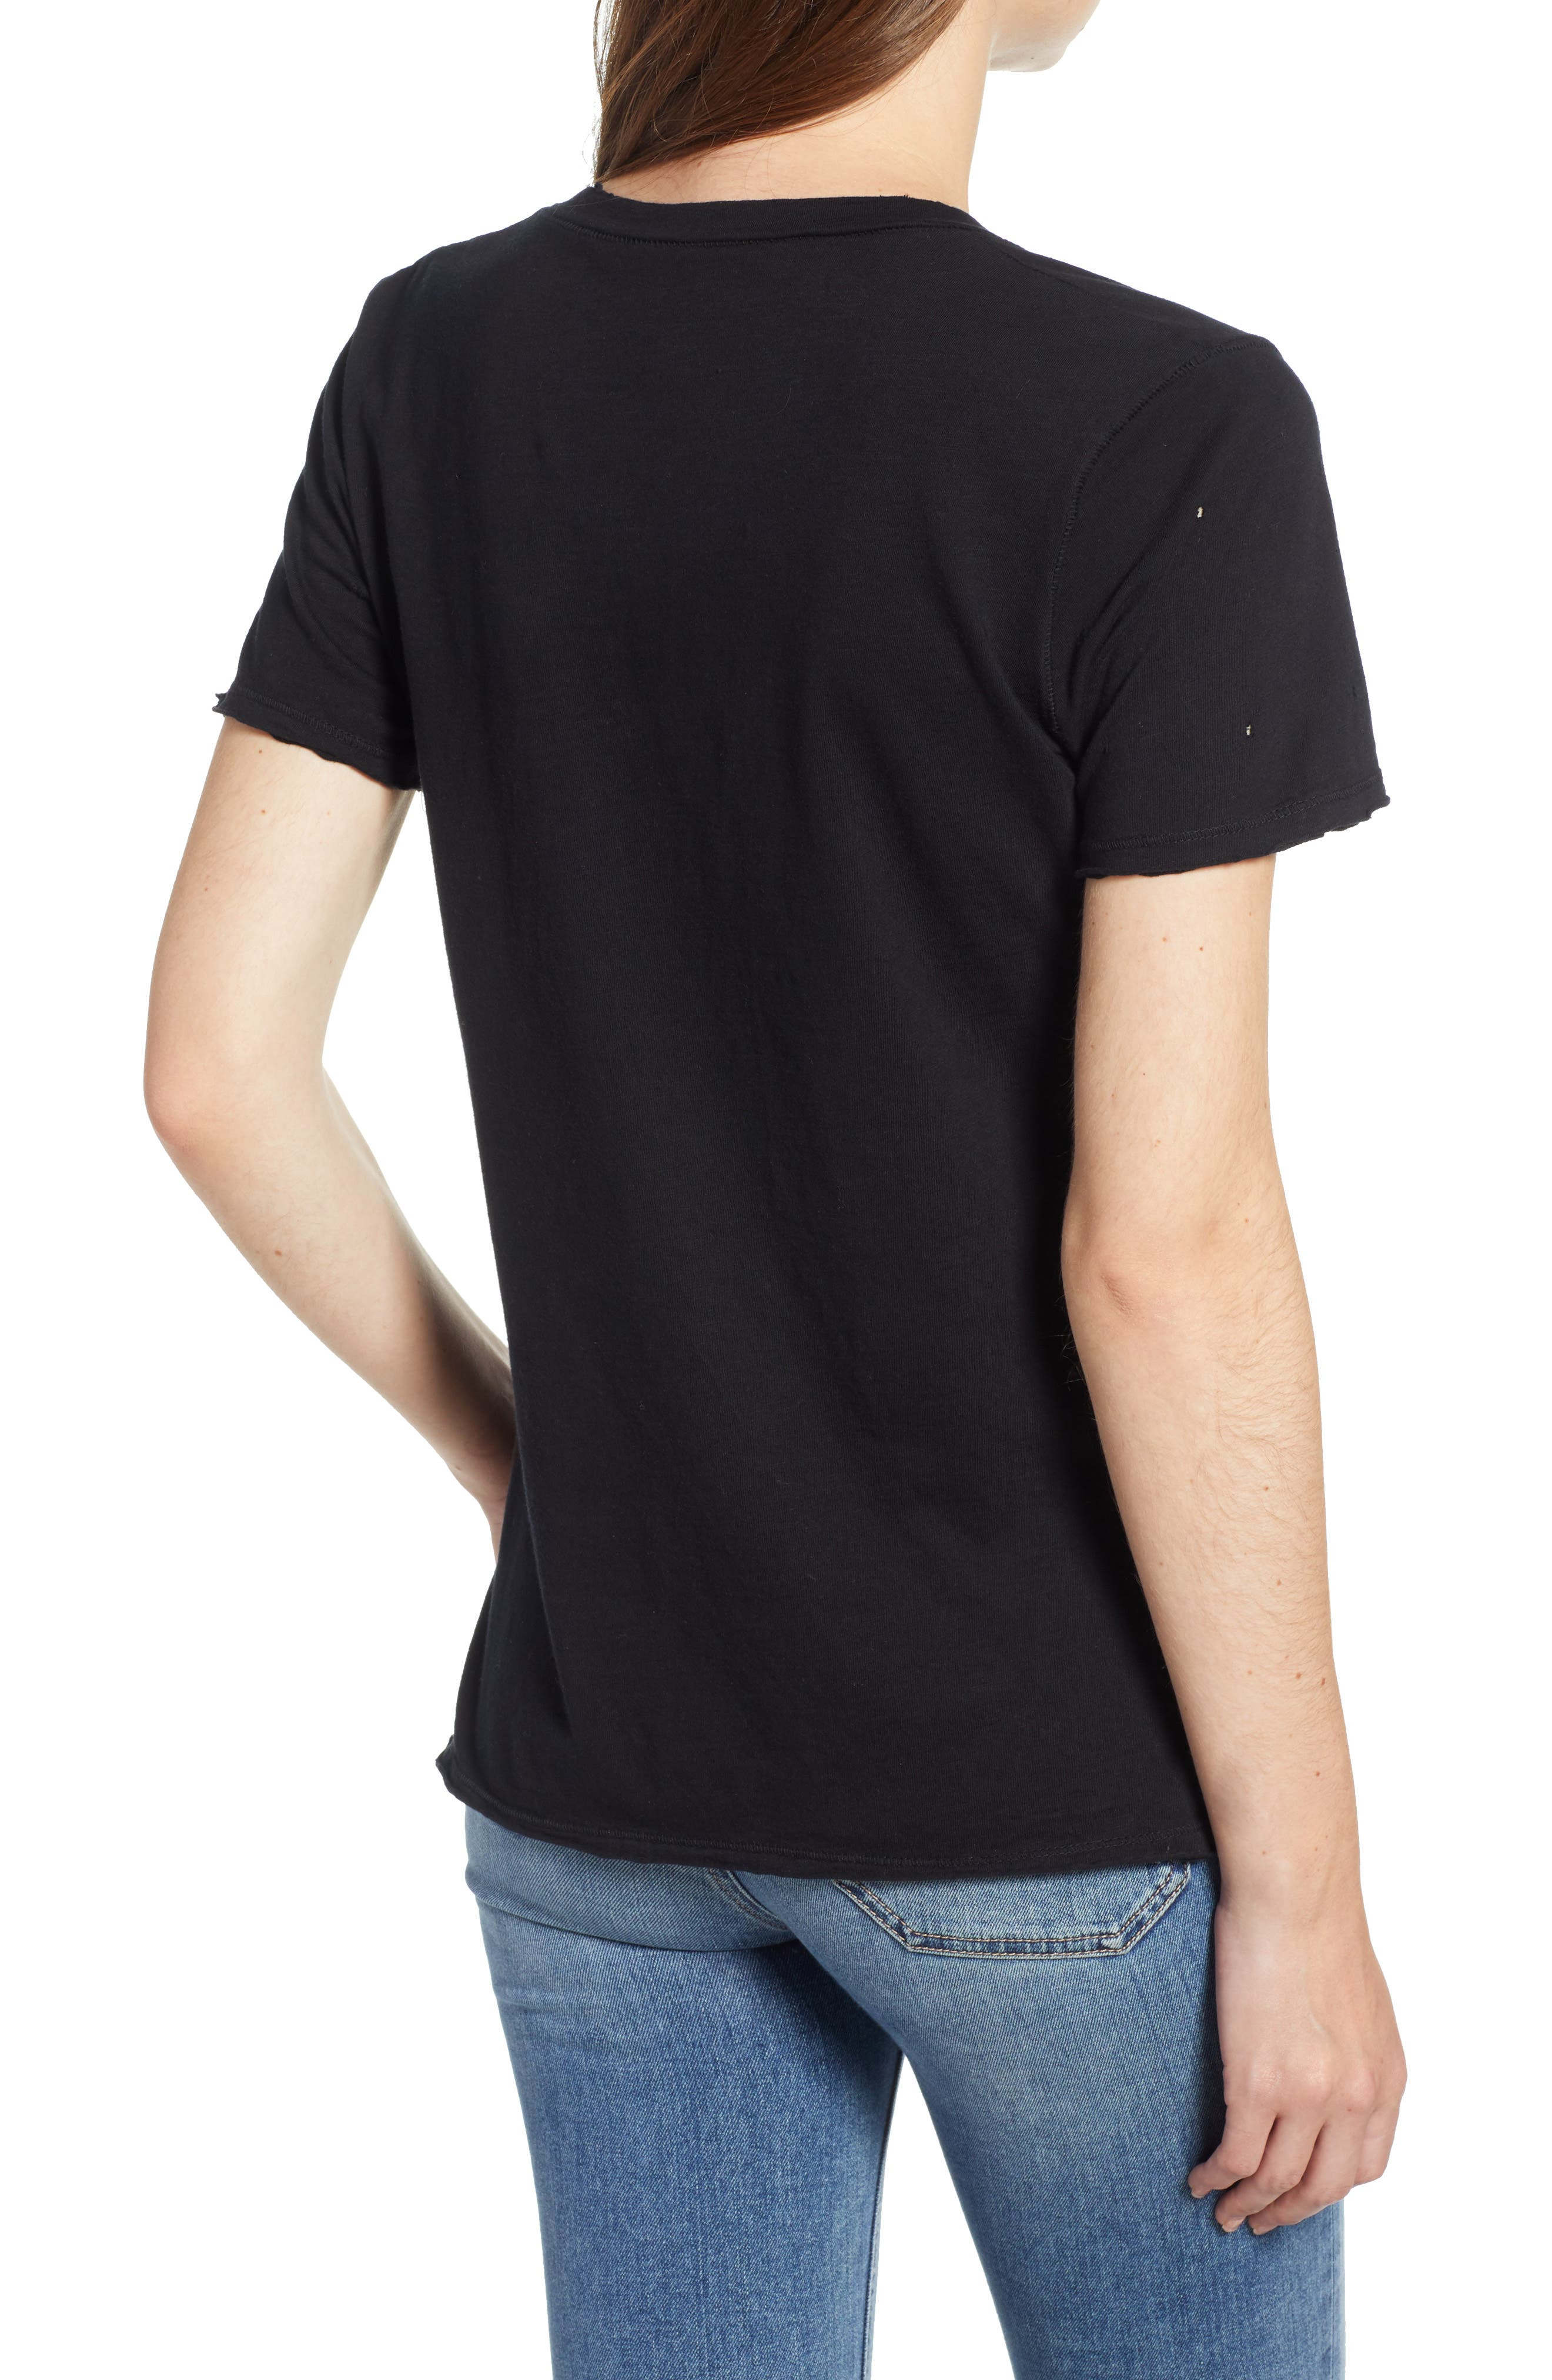 PRINCE PETER,                             Distressed V-Neck Tee,                             Alternate thumbnail 2, color,                             001